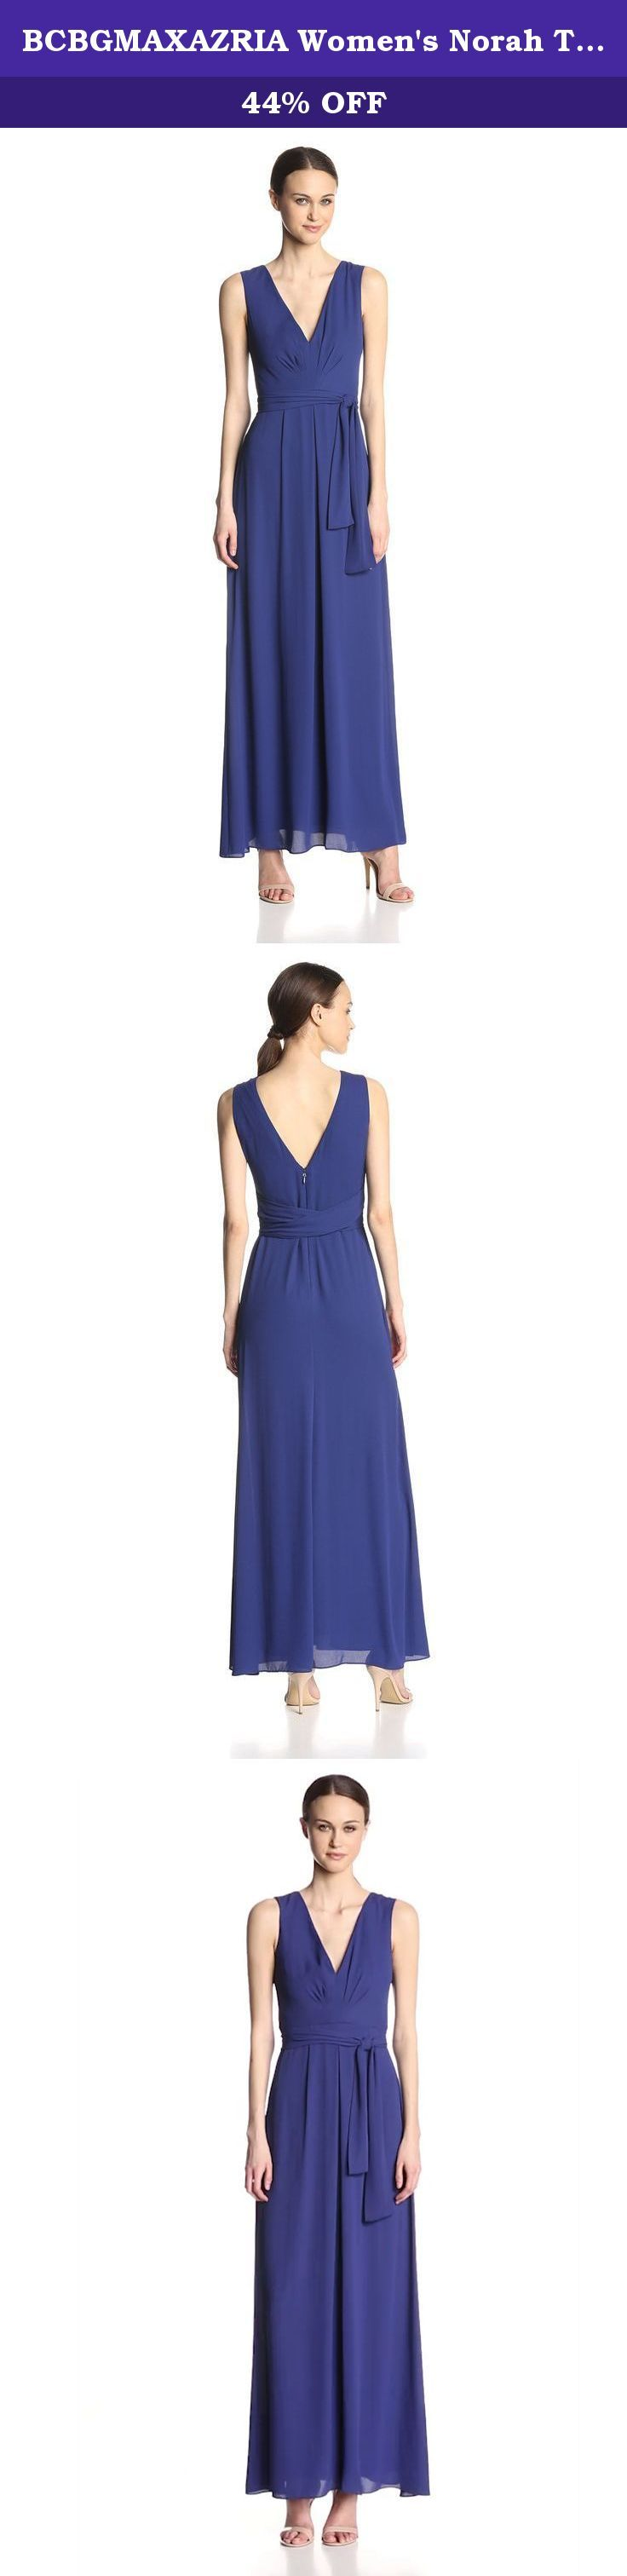 BCBGMAXAZRIA Women's Norah Tie Waist V-Neck Evening Gown, Orient Blue, 2. This sumptuous, floor-sweeping dress is an undeniably alluring silhouette with a figure-flattering tie-waist closure.